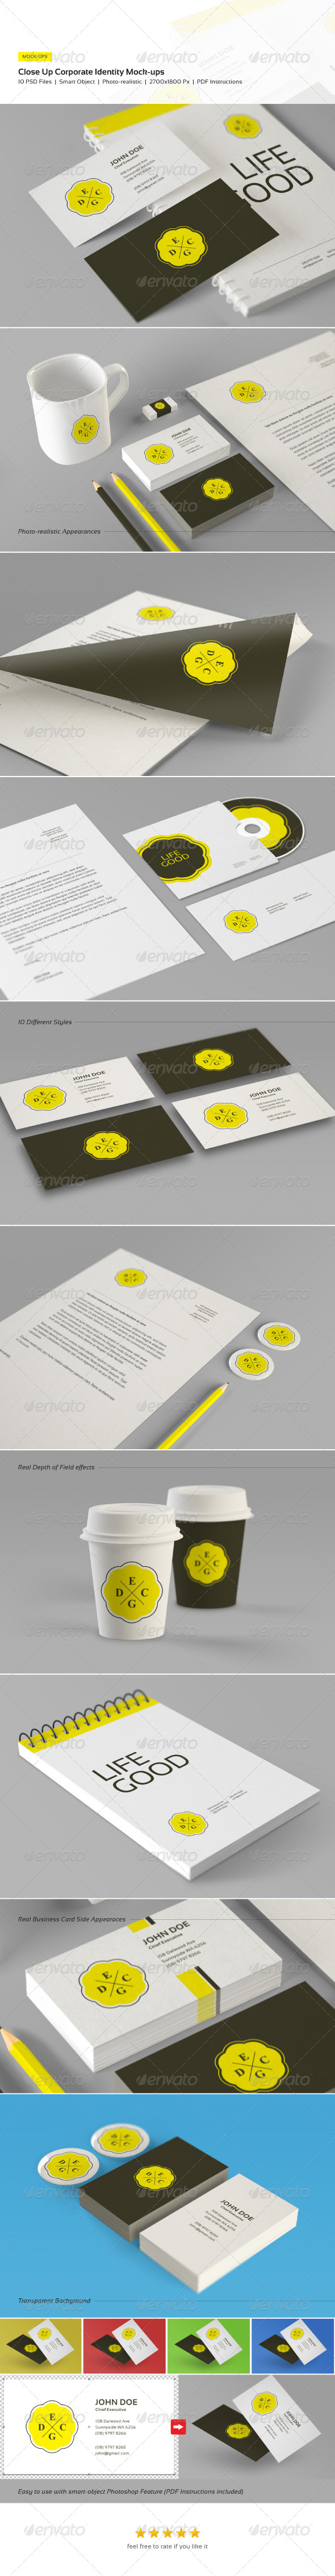 GraphicRiver Close Up Corporate Identity and Branding Mock-Ups 5070026